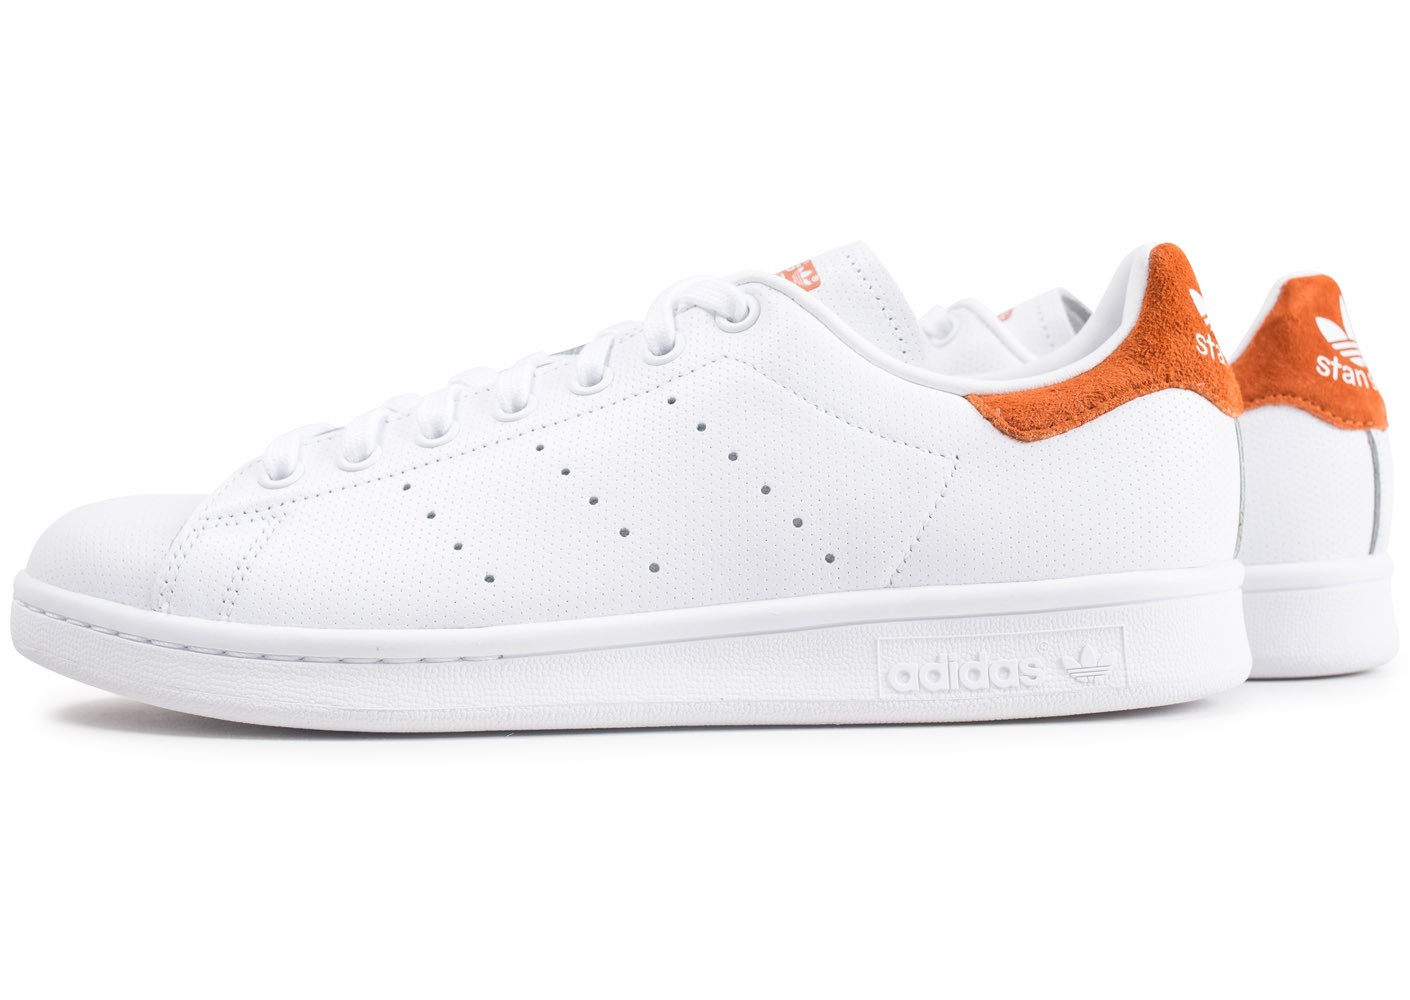 adidas Stan Smith blanche et rouge Chaussures Baskets